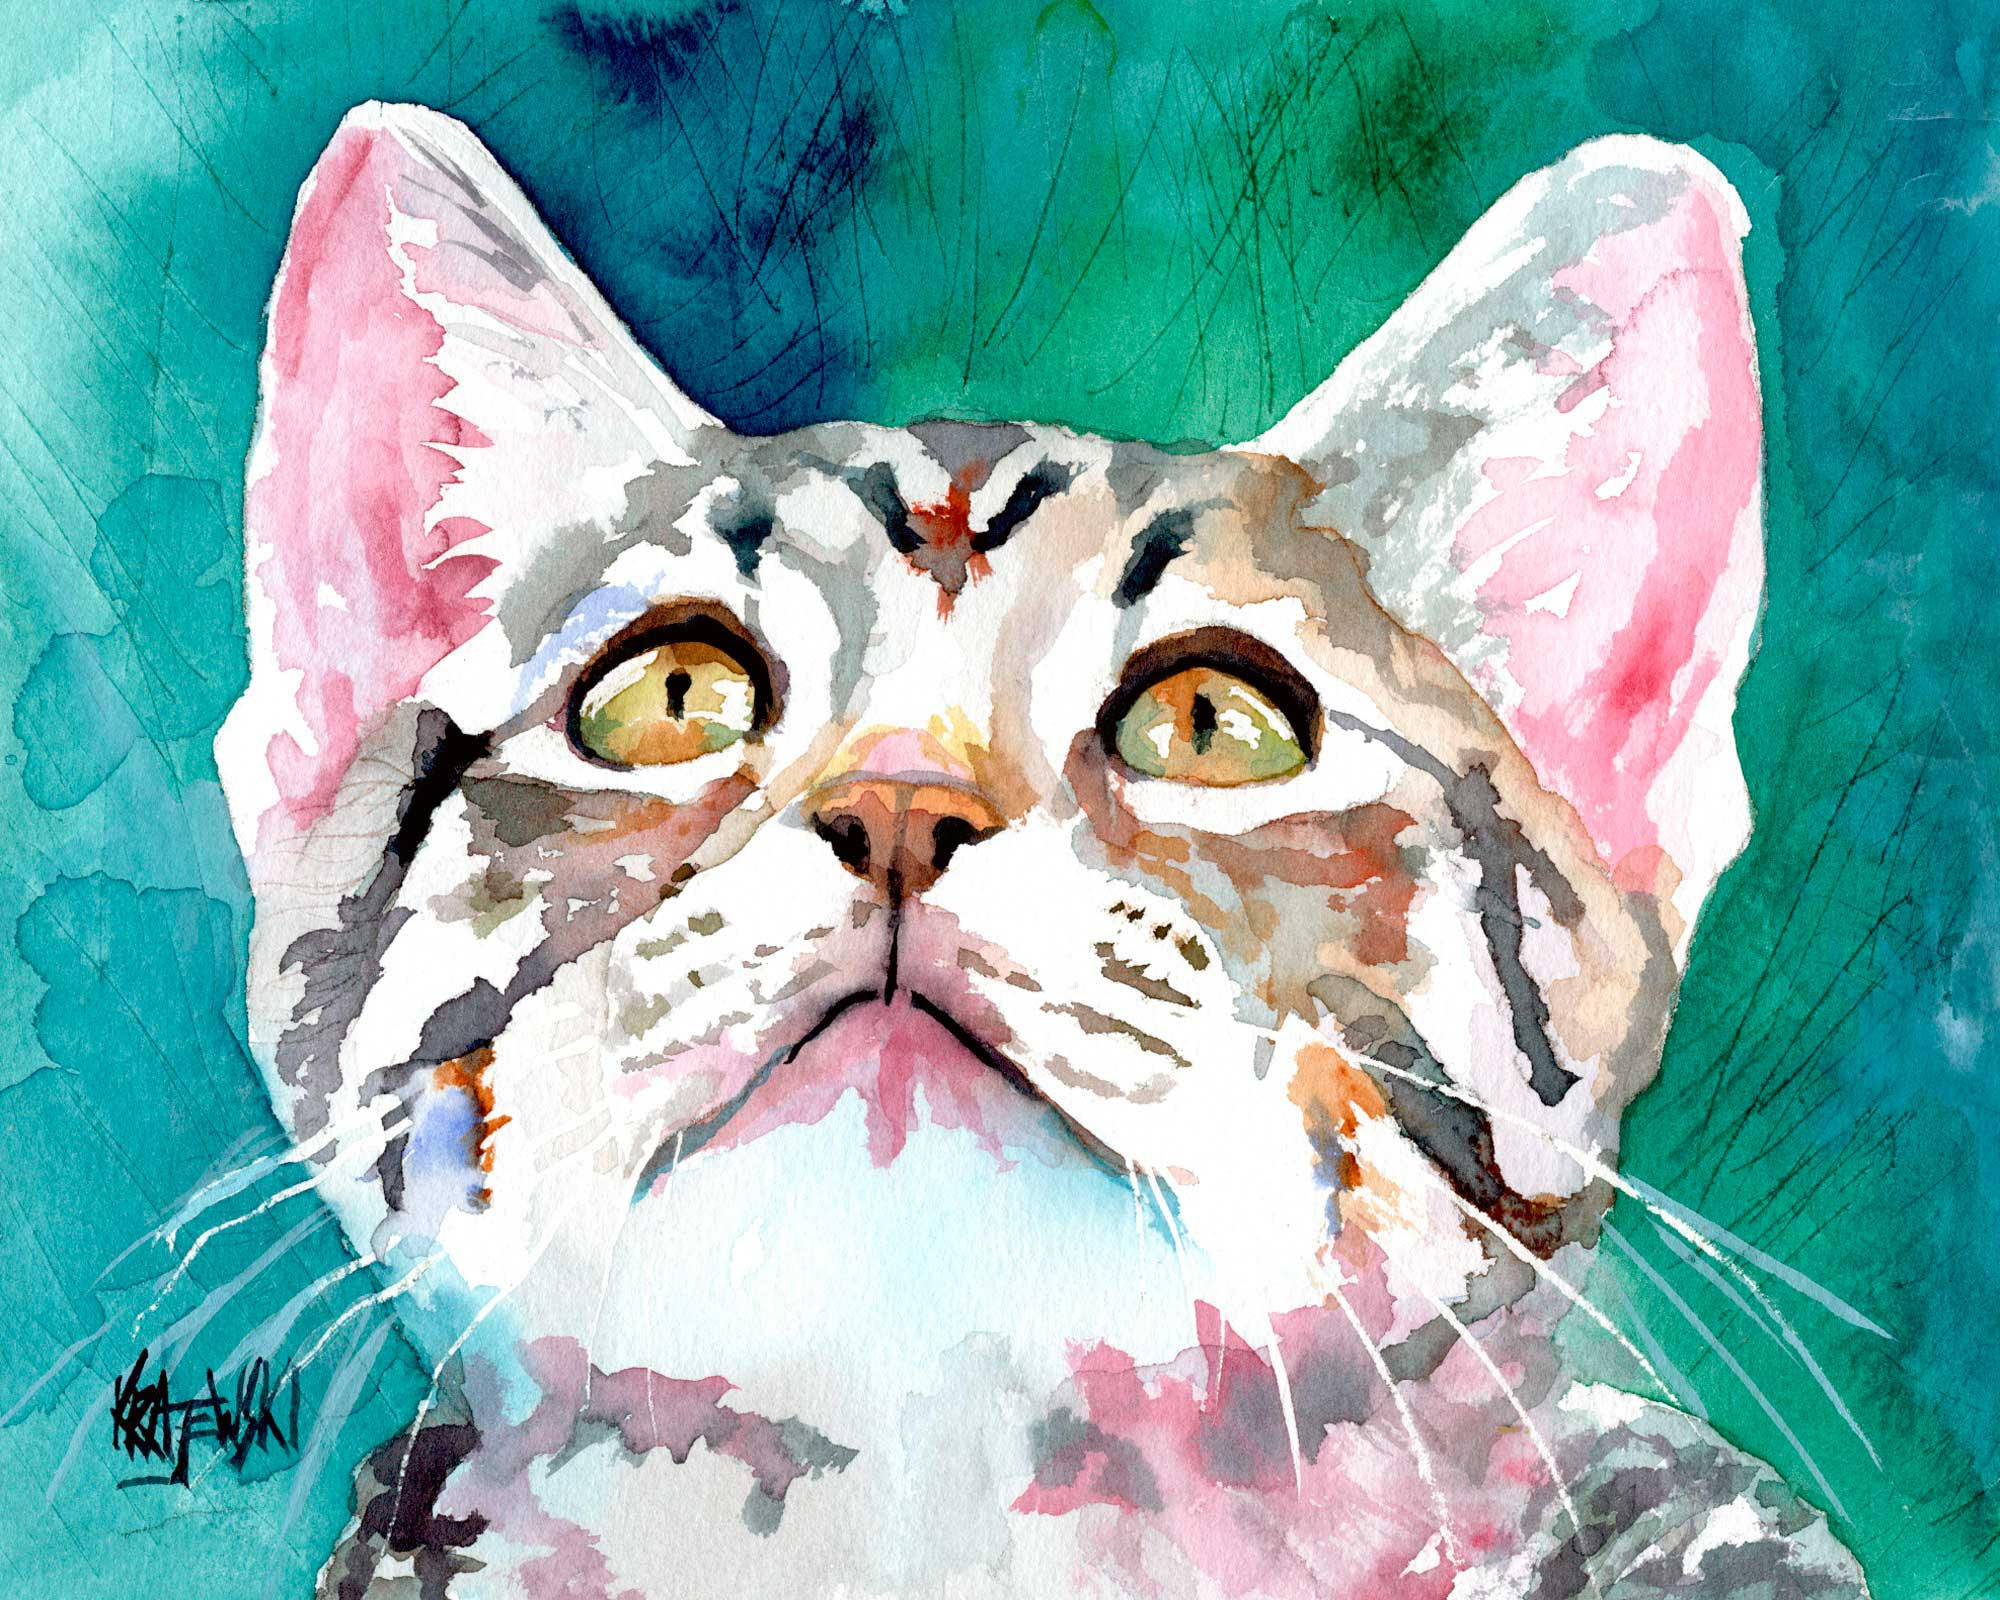 Tabby Cat 020307 - Ron Krajewski Art